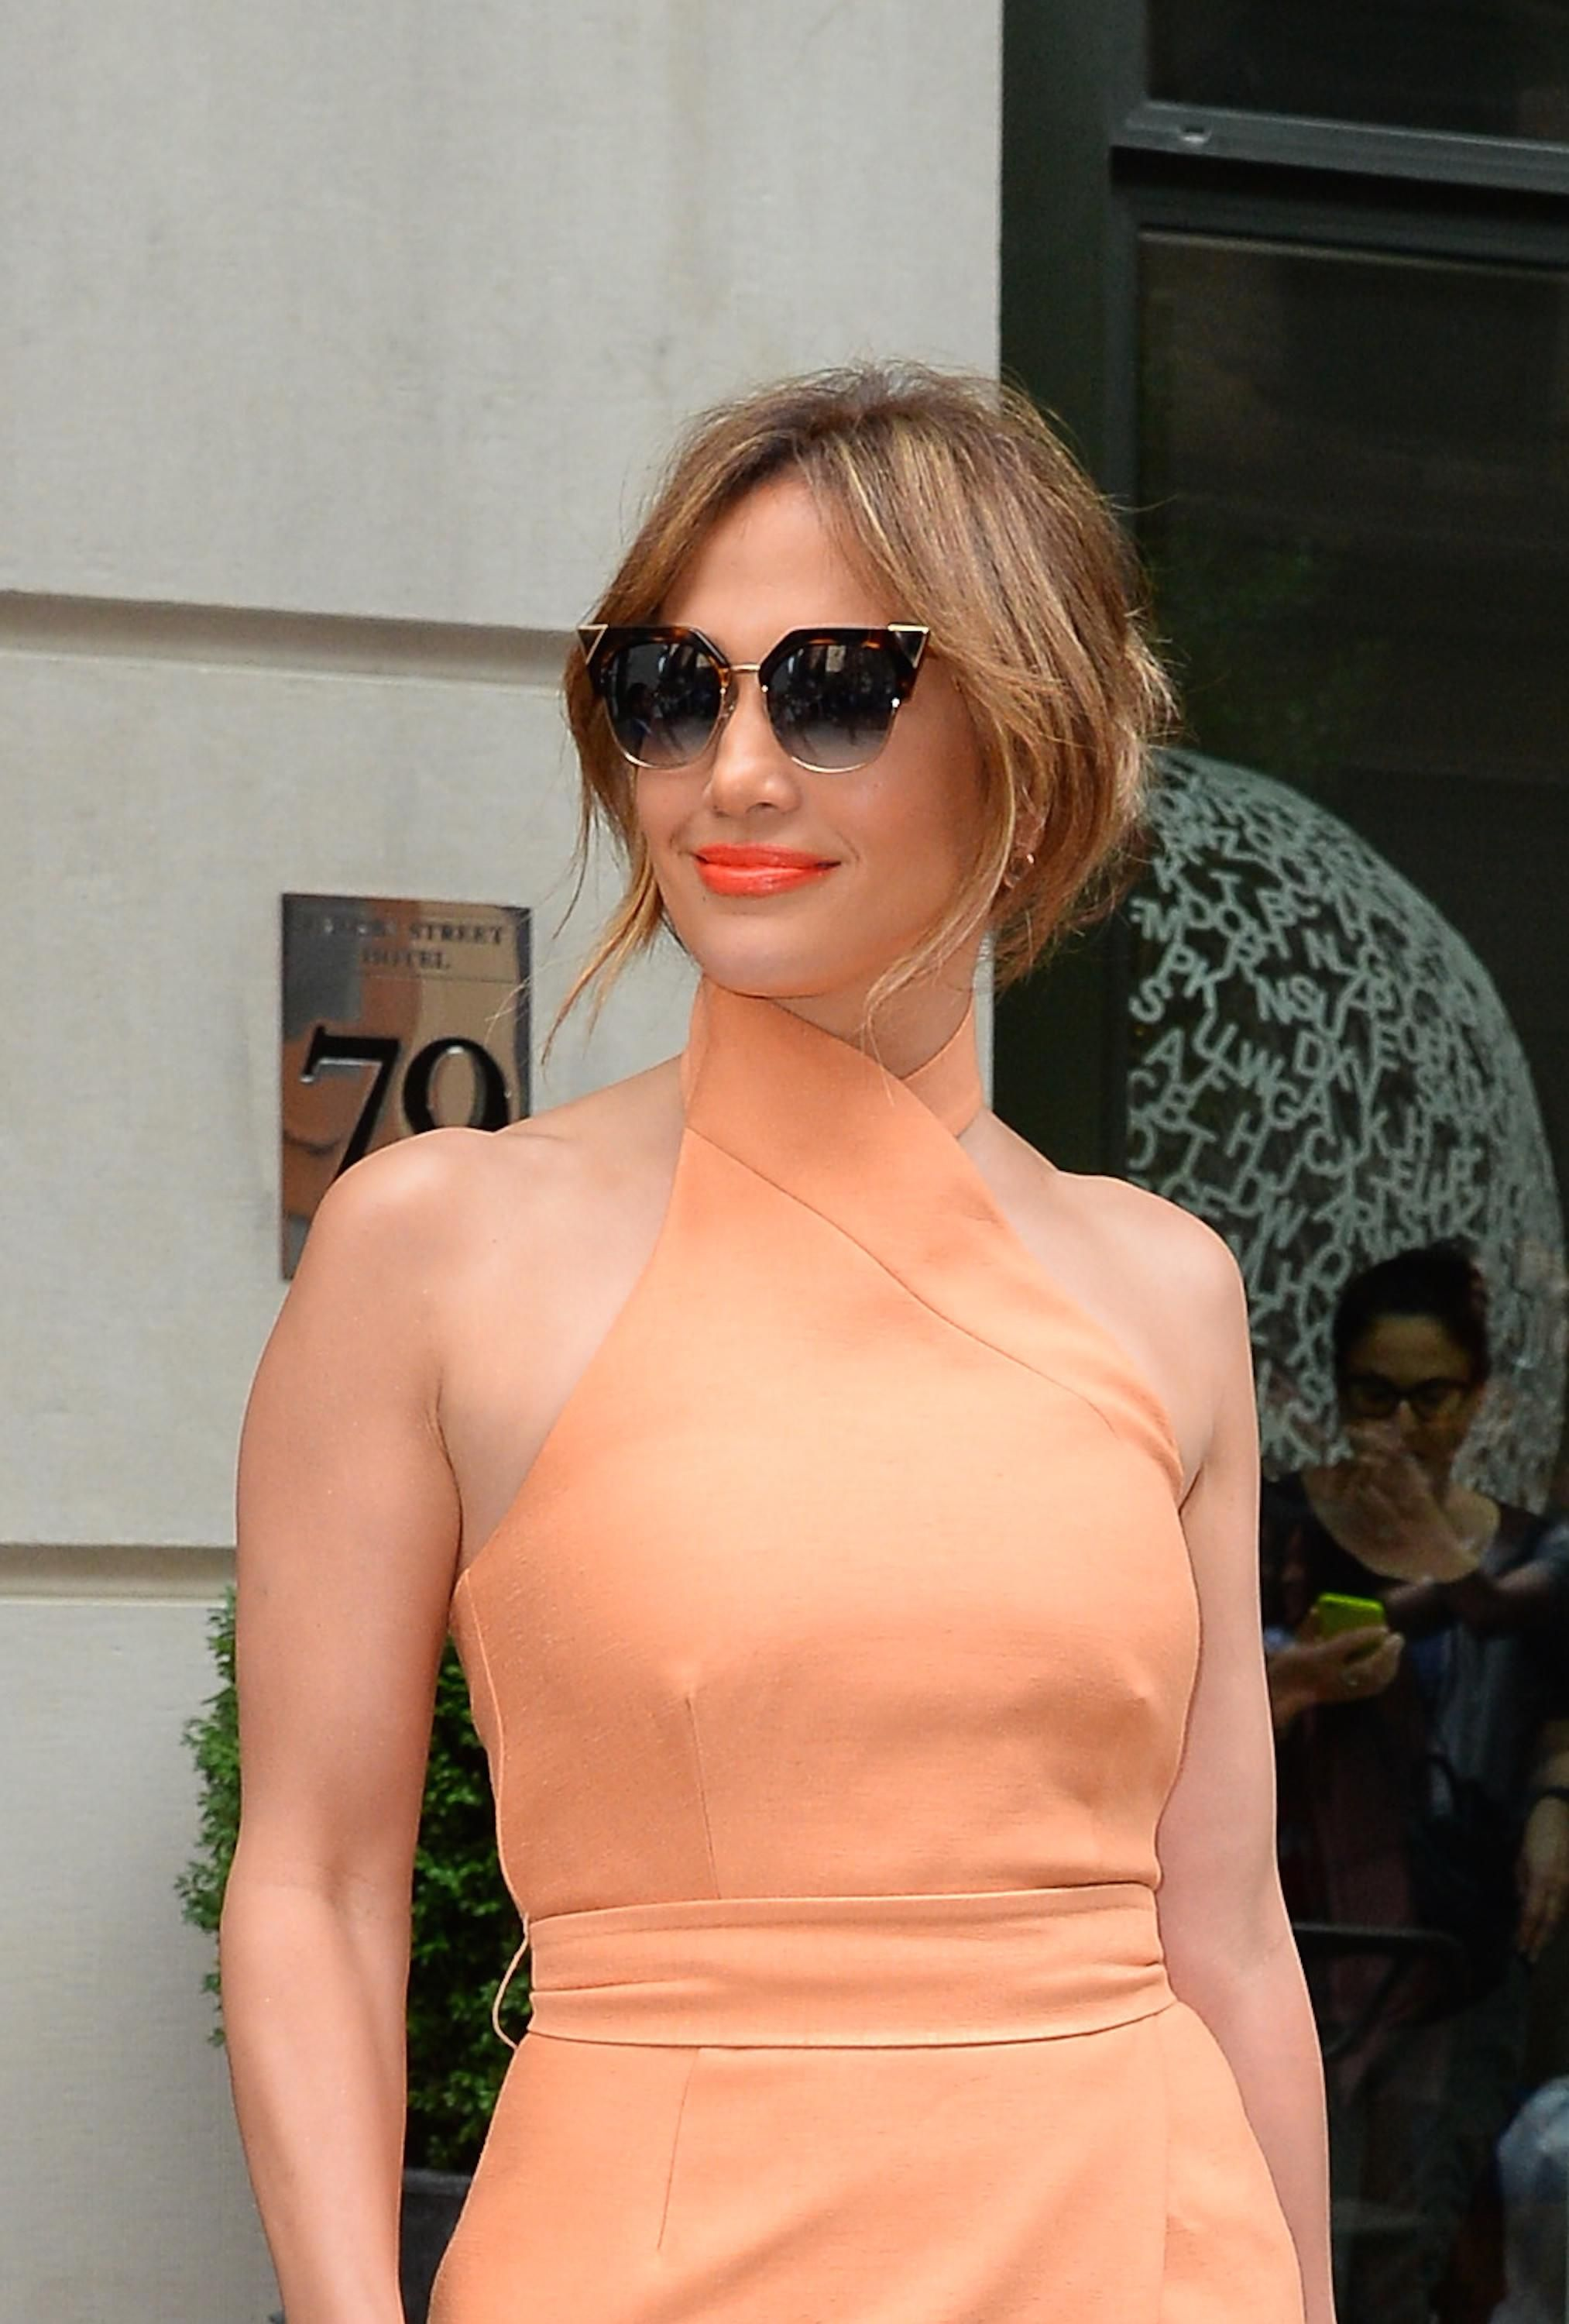 41ba7cad57 Jennifer Lopez is peachy-keen in her Fendi Iridia sunglasses. Find your  summer shades on Fendi.com!